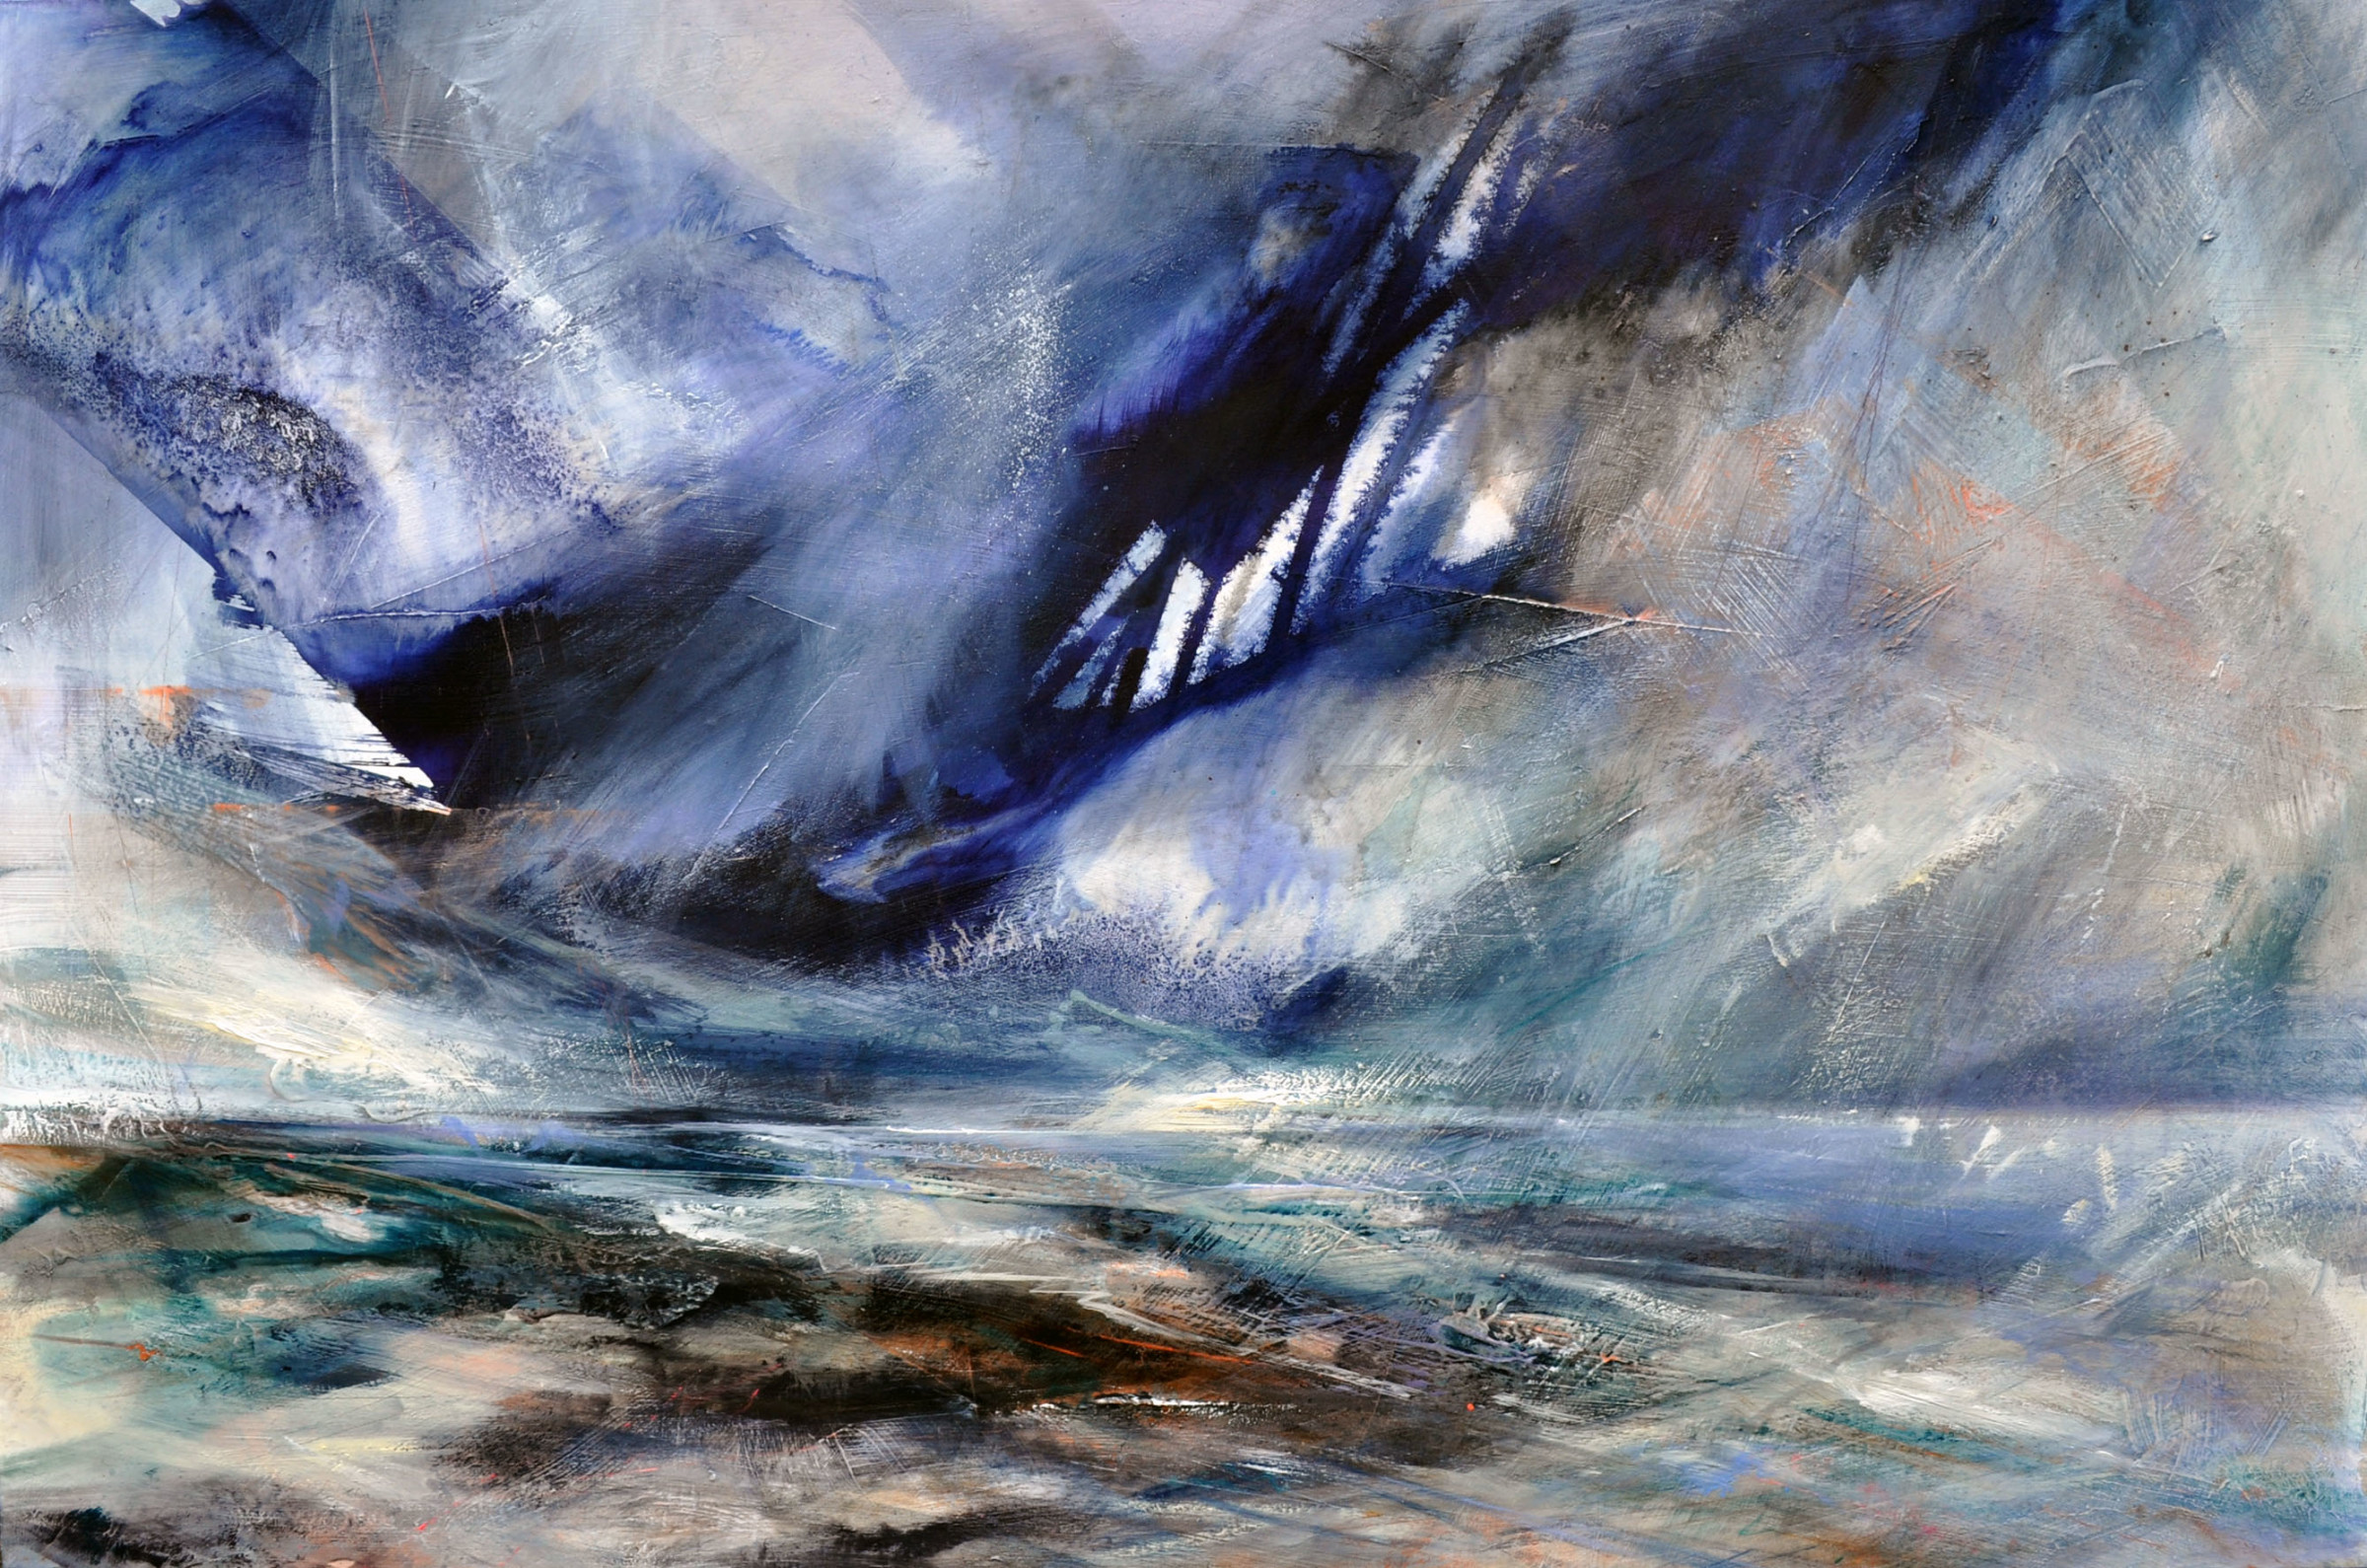 <span class=&#34;link fancybox-details-link&#34;><a href=&#34;/artists/90-freya-horsley/works/5534-freya-horsley-beyond-sight-2018/&#34;>View Detail Page</a></span><div class=&#34;artist&#34;><strong>Freya Horsley</strong></div> <div class=&#34;title&#34;><em>Beyond Sight</em>, 2018</div> <div class=&#34;signed_and_dated&#34;>signed on reverse</div> <div class=&#34;medium&#34;>mixed media on canvas</div> <div class=&#34;dimensions&#34;>80 x 120 cm<br /> 31 1/2 x 47 1/4 inches</div><div class=&#34;copyright_line&#34;>£ 195 x 10 Months, OwnArt 0% APR</div>